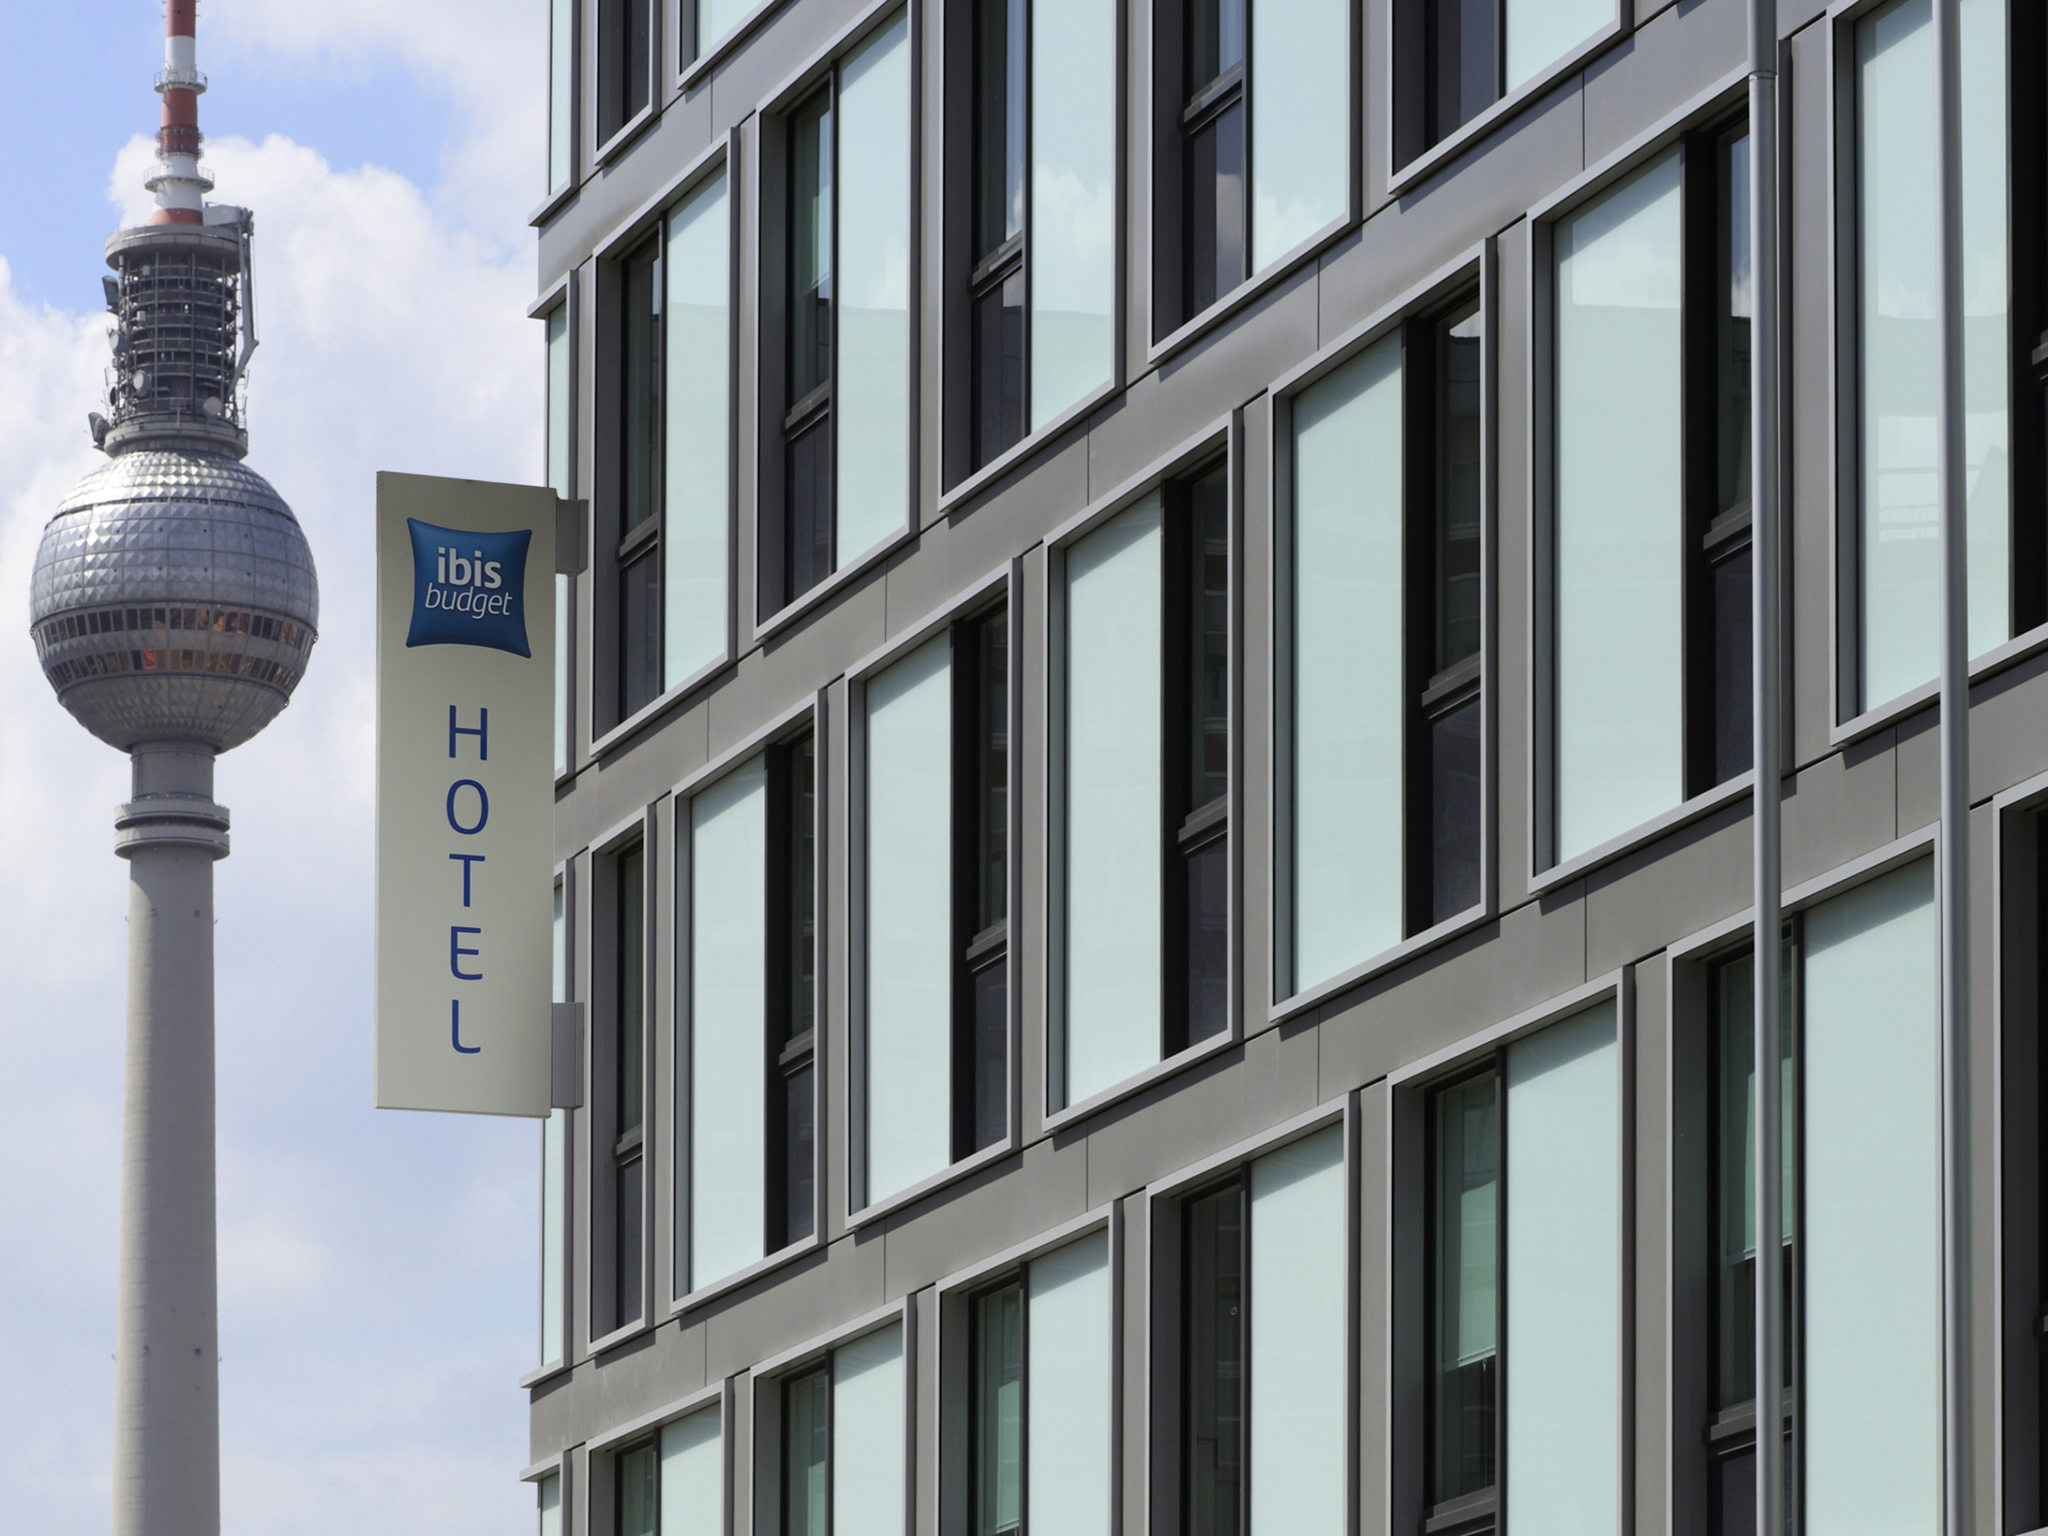 Hotel in berlin ibis budget berlin alexanderplatz for Alexanderplatz hotel